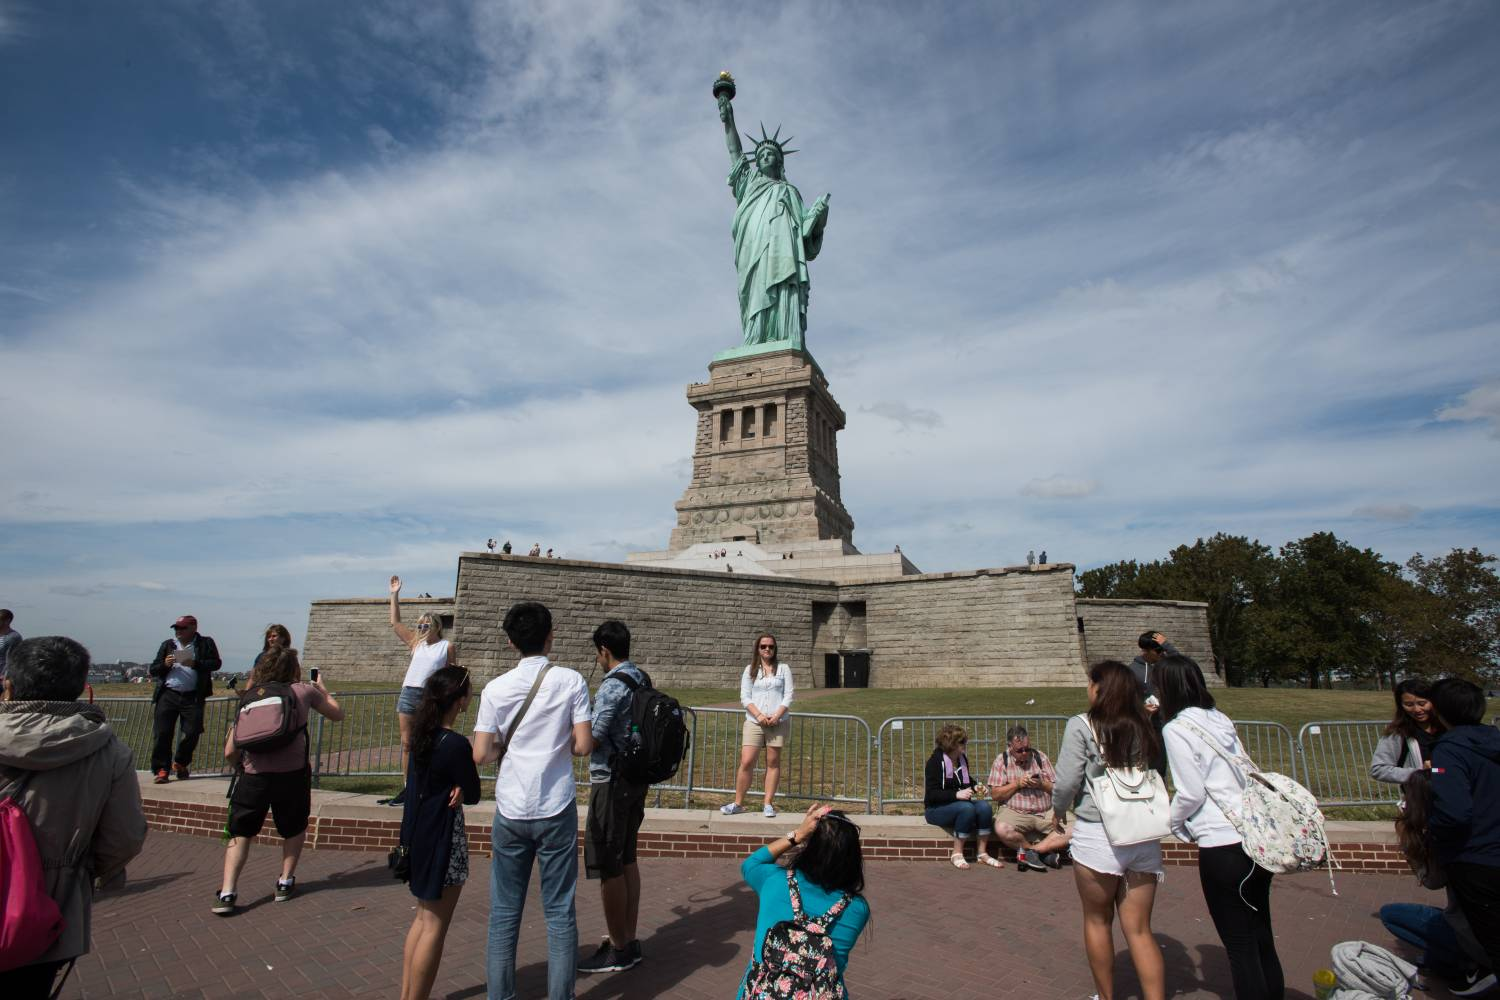 Statue of Liberty, tourists